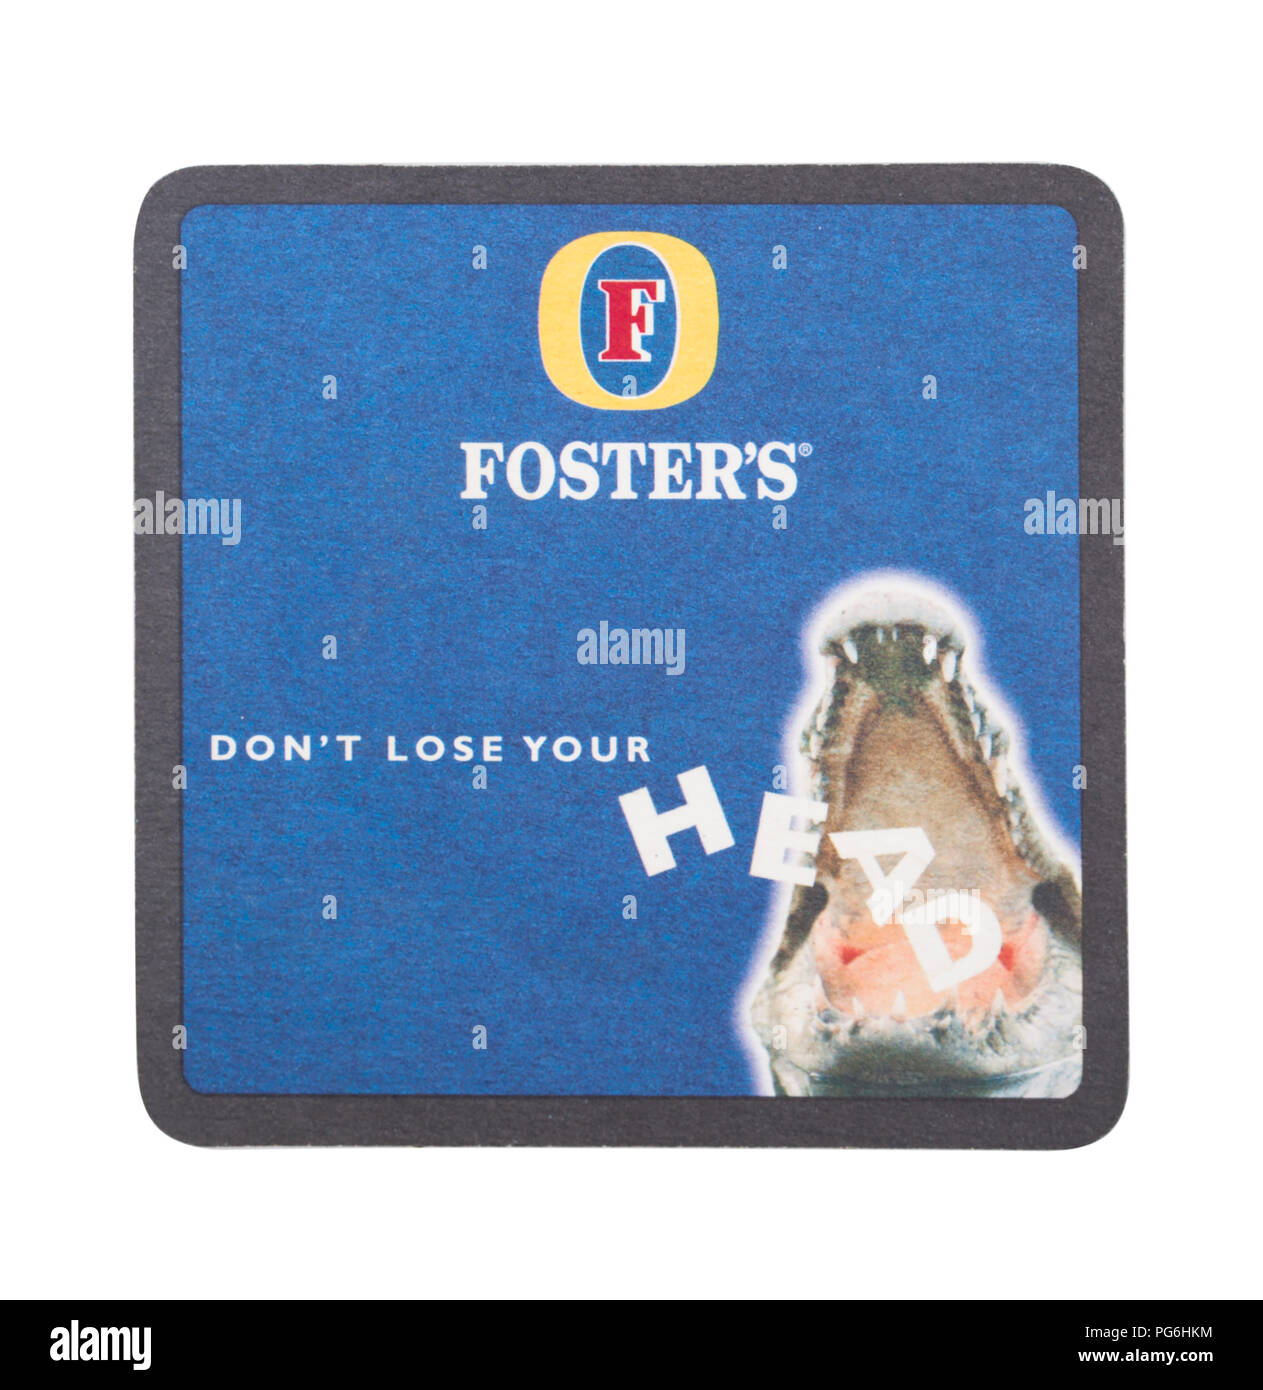 LONDON, UK - AUGUST 22, 2018: Foster's paper beer beermat coaster isolated on white background. - Stock Image